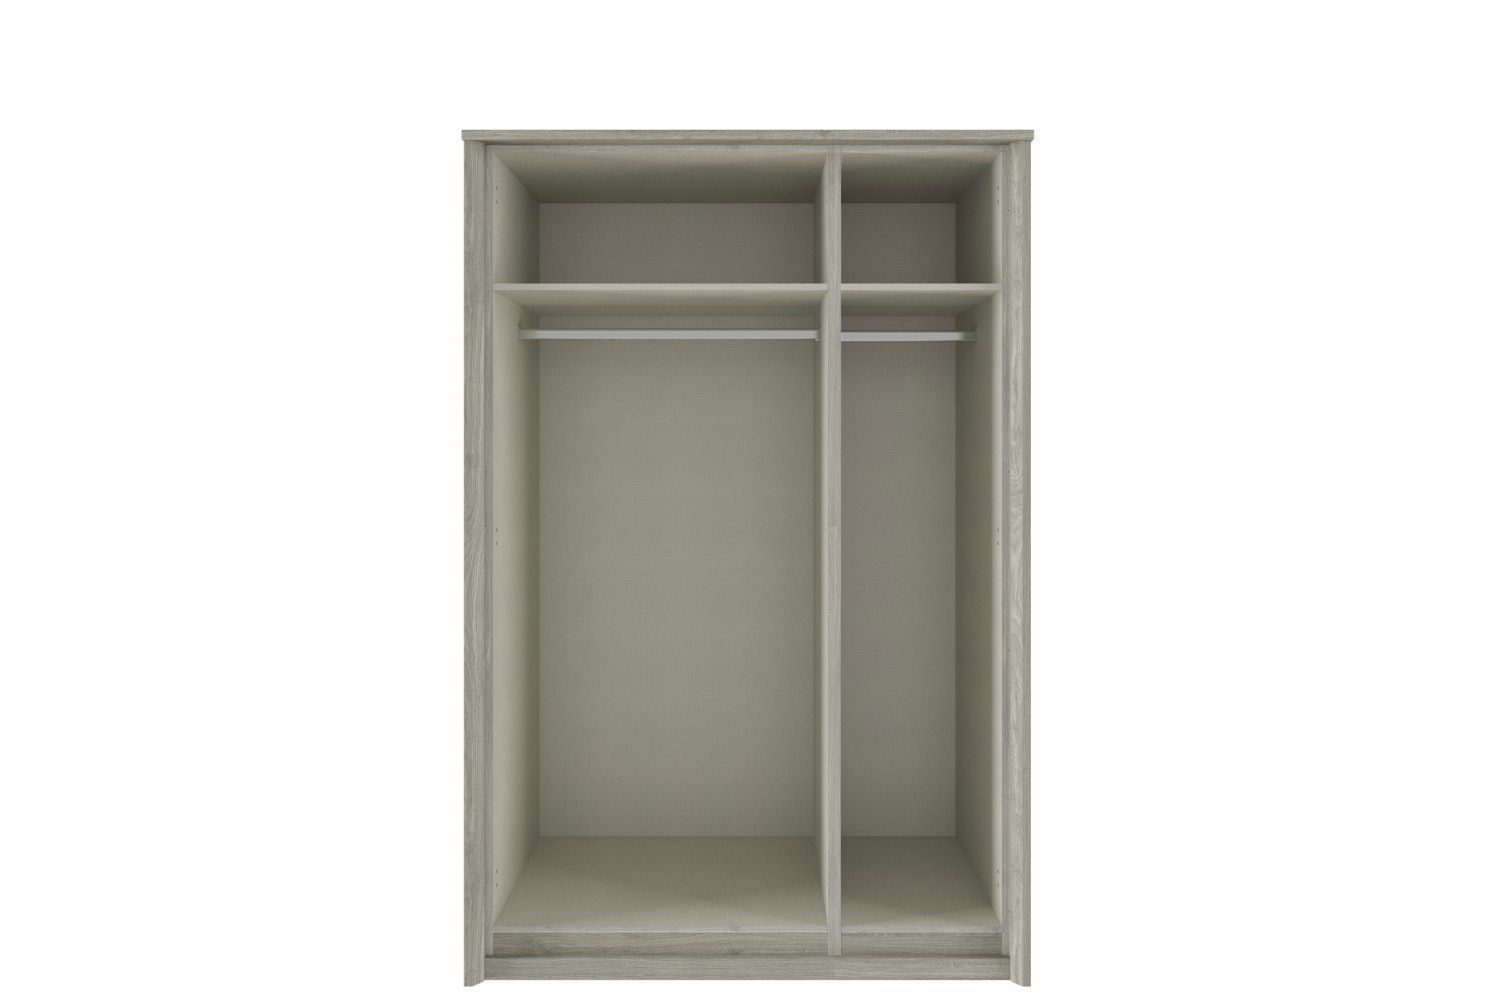 Presley Wardrobe | 3 Doors | Centre Mirror | Oak & White